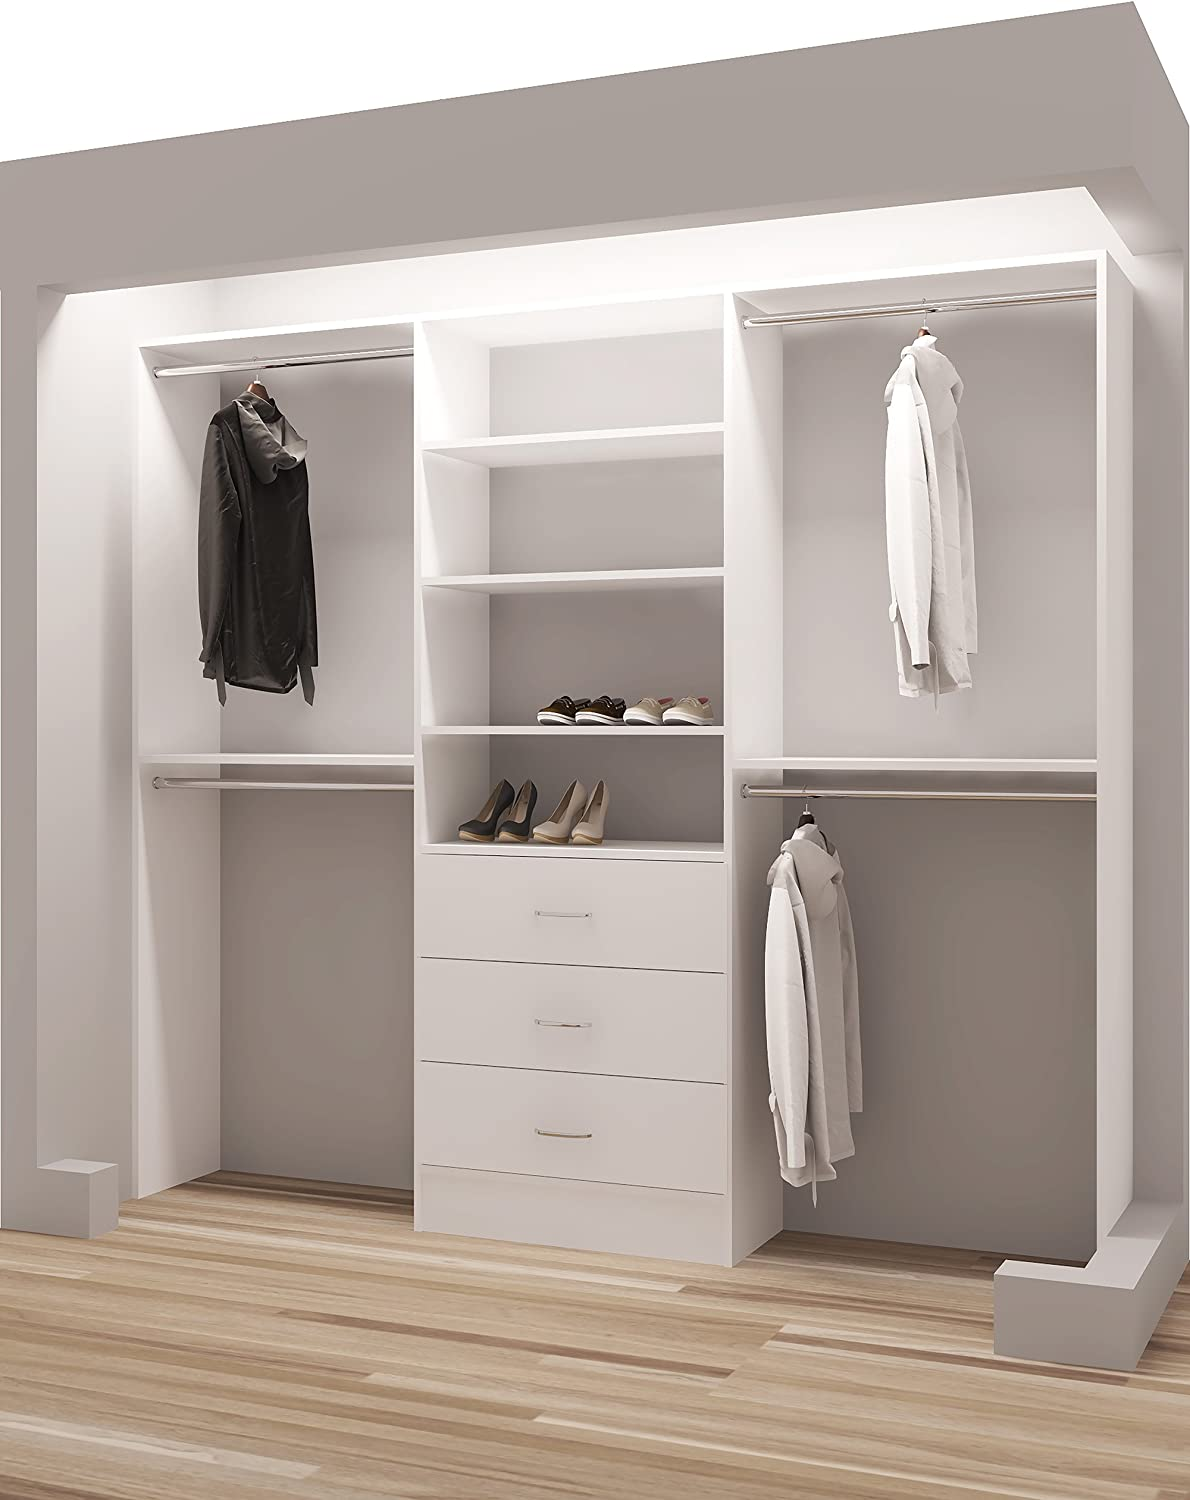 Tidy Squares Closet System – Easy to Assemble - Reach in, Adjustable Shelves, Multiple Drawers and Hanger Racks – Perfect Idea for Extra Storage - Custom Closet Organizer Kit, White